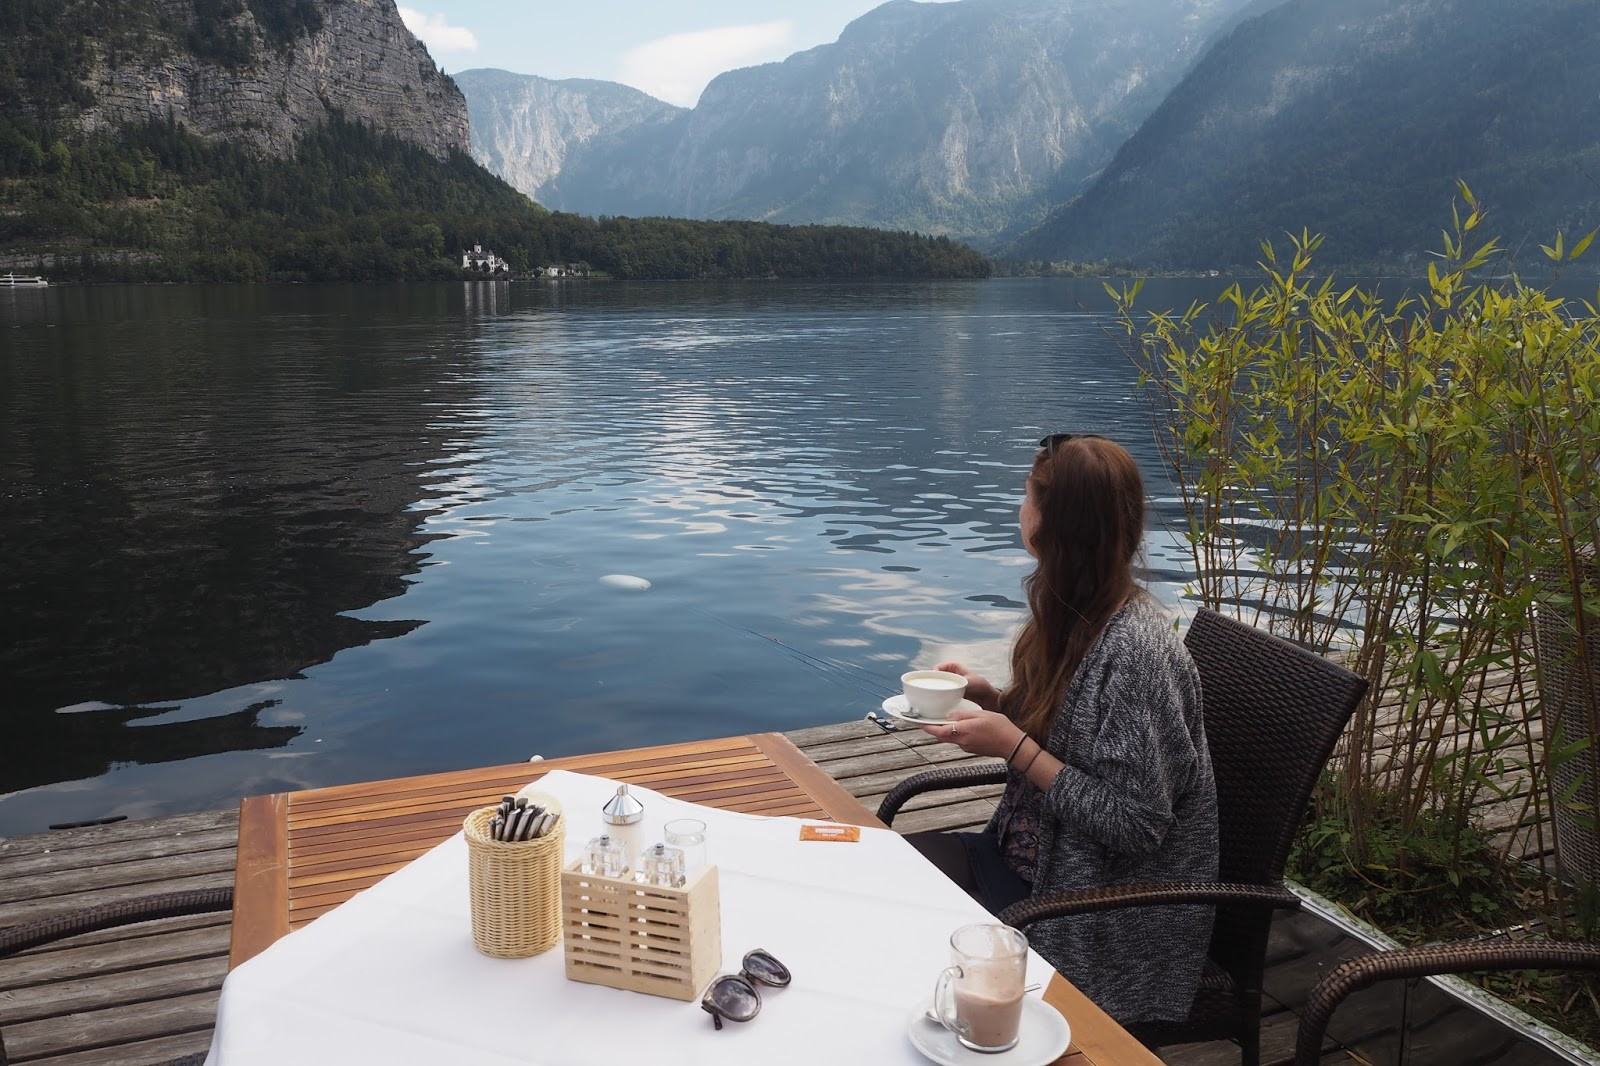 enjoying lunch at Seehotel, Hallstatt